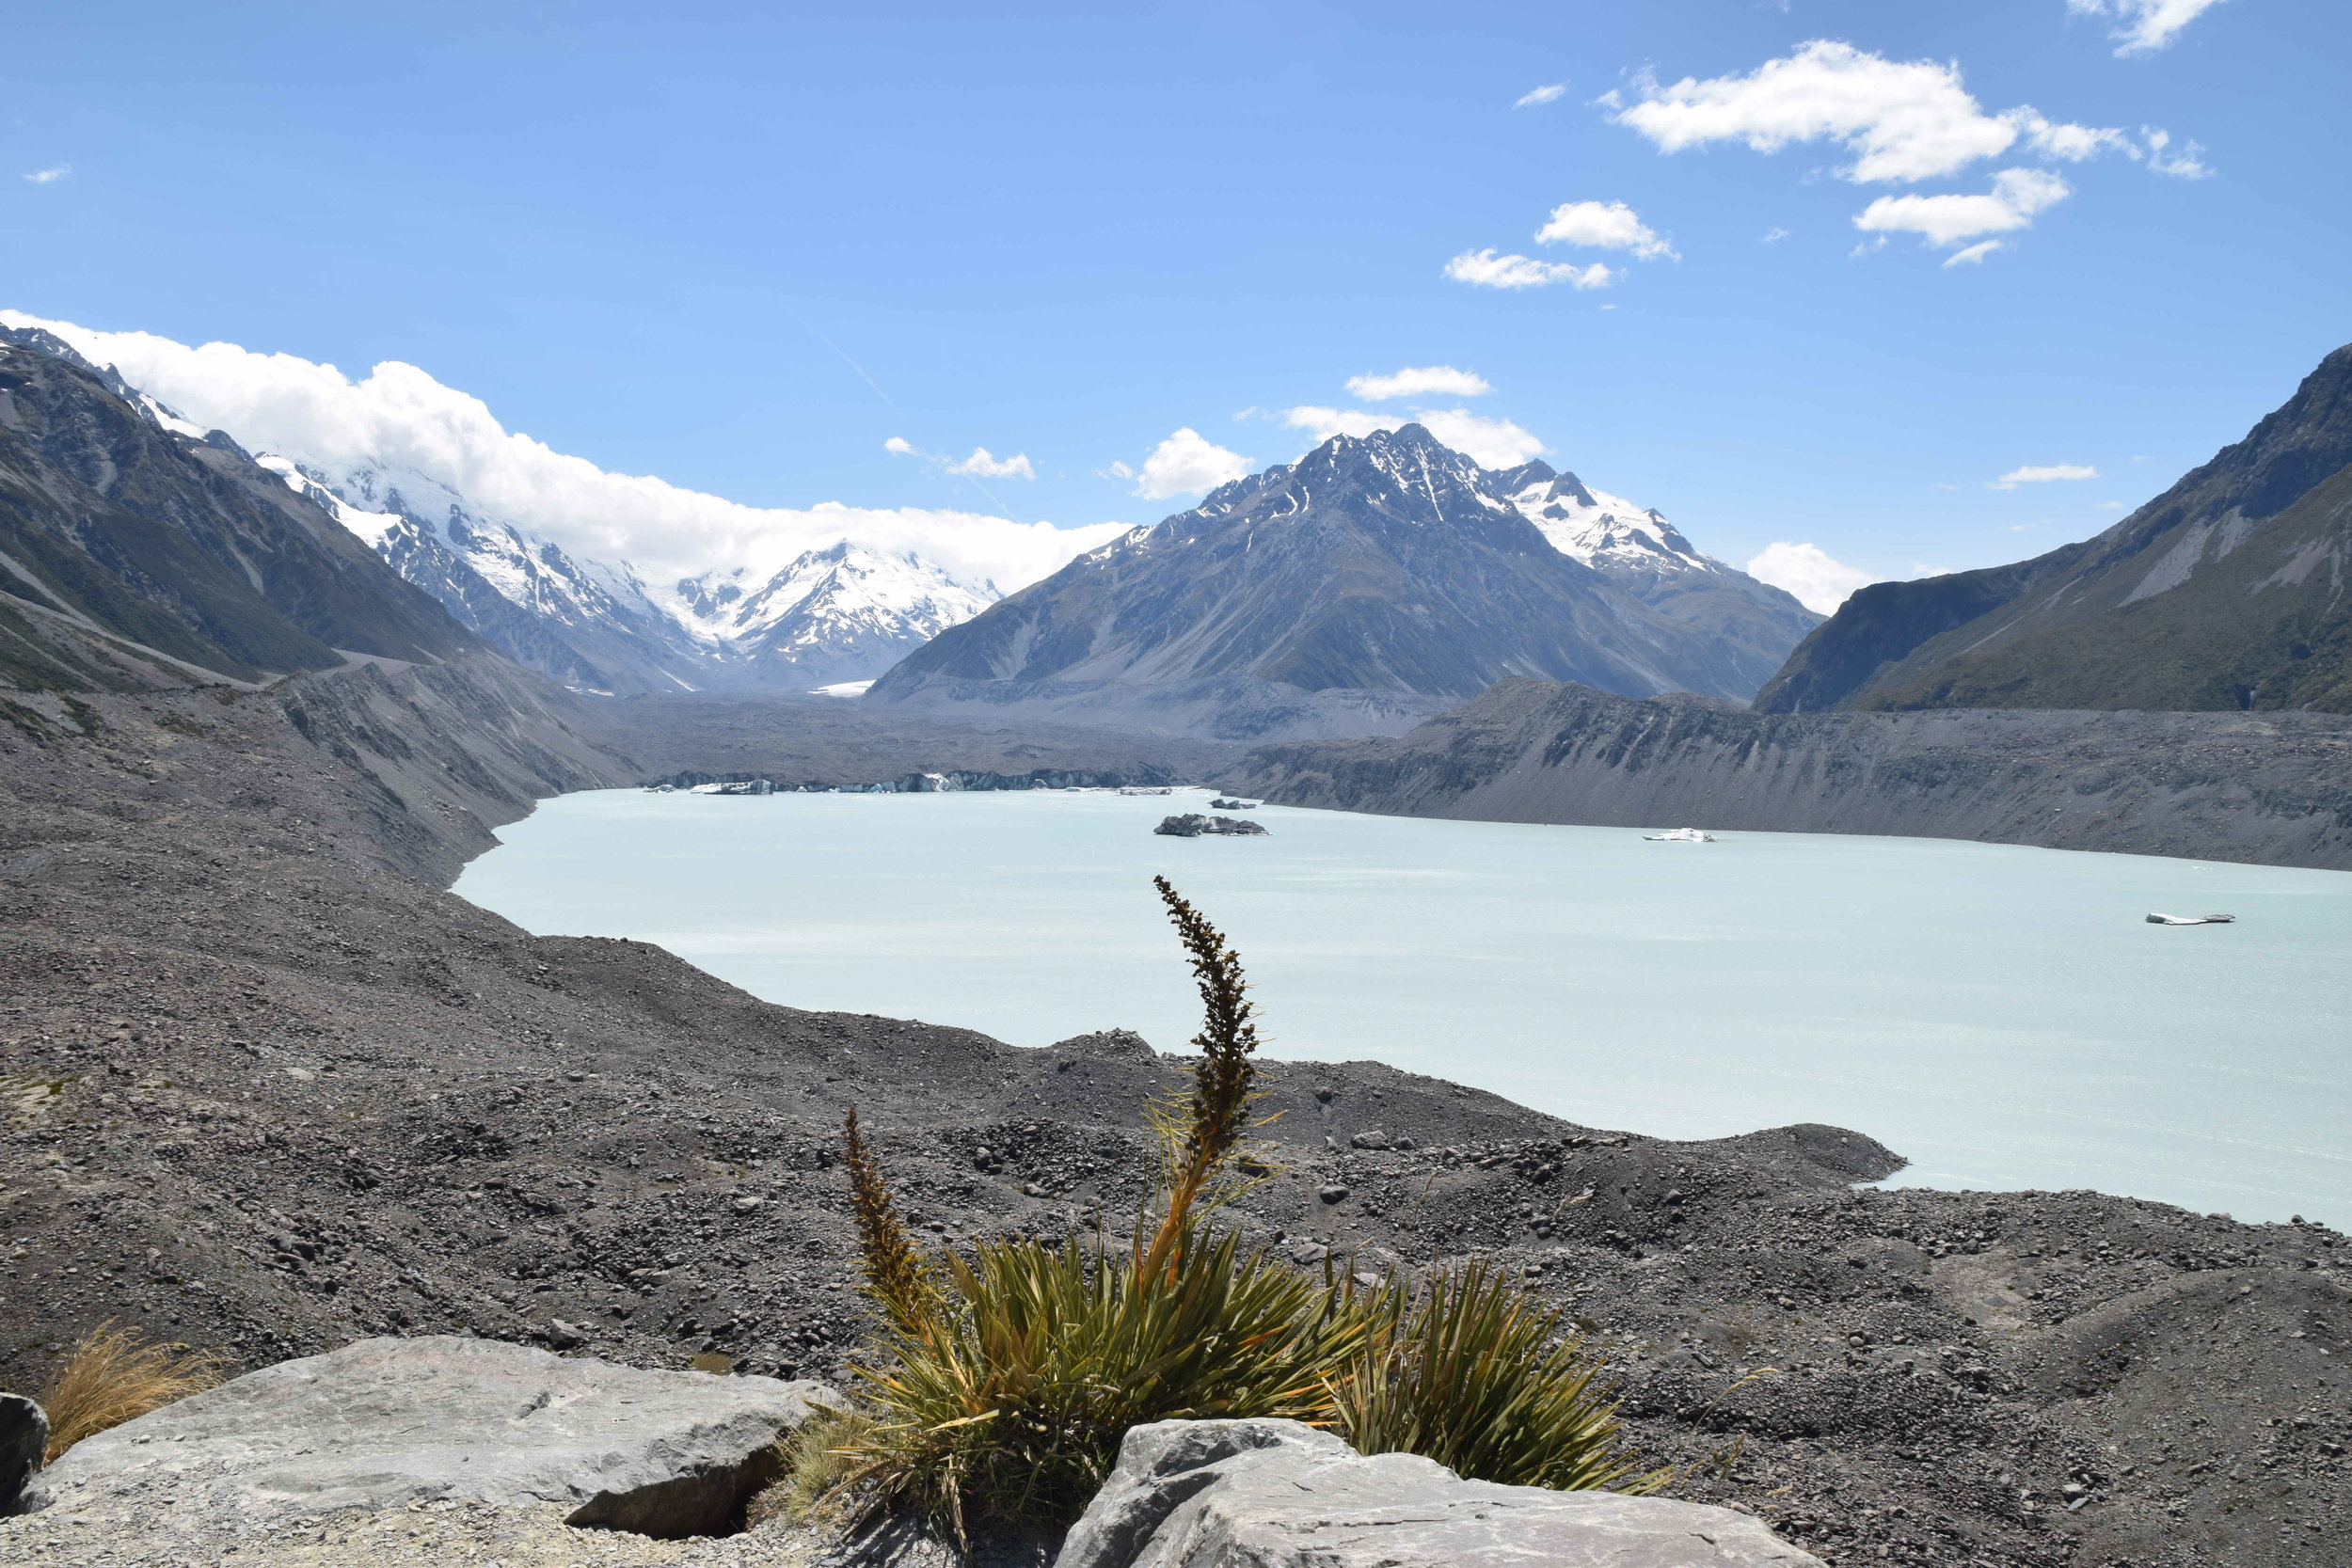 Lake Tasman, which was not there in the 1970s and is now seven kilometres long and deeper than Lake Pukaki. This is a result of the Tasman Glacier's retreat.